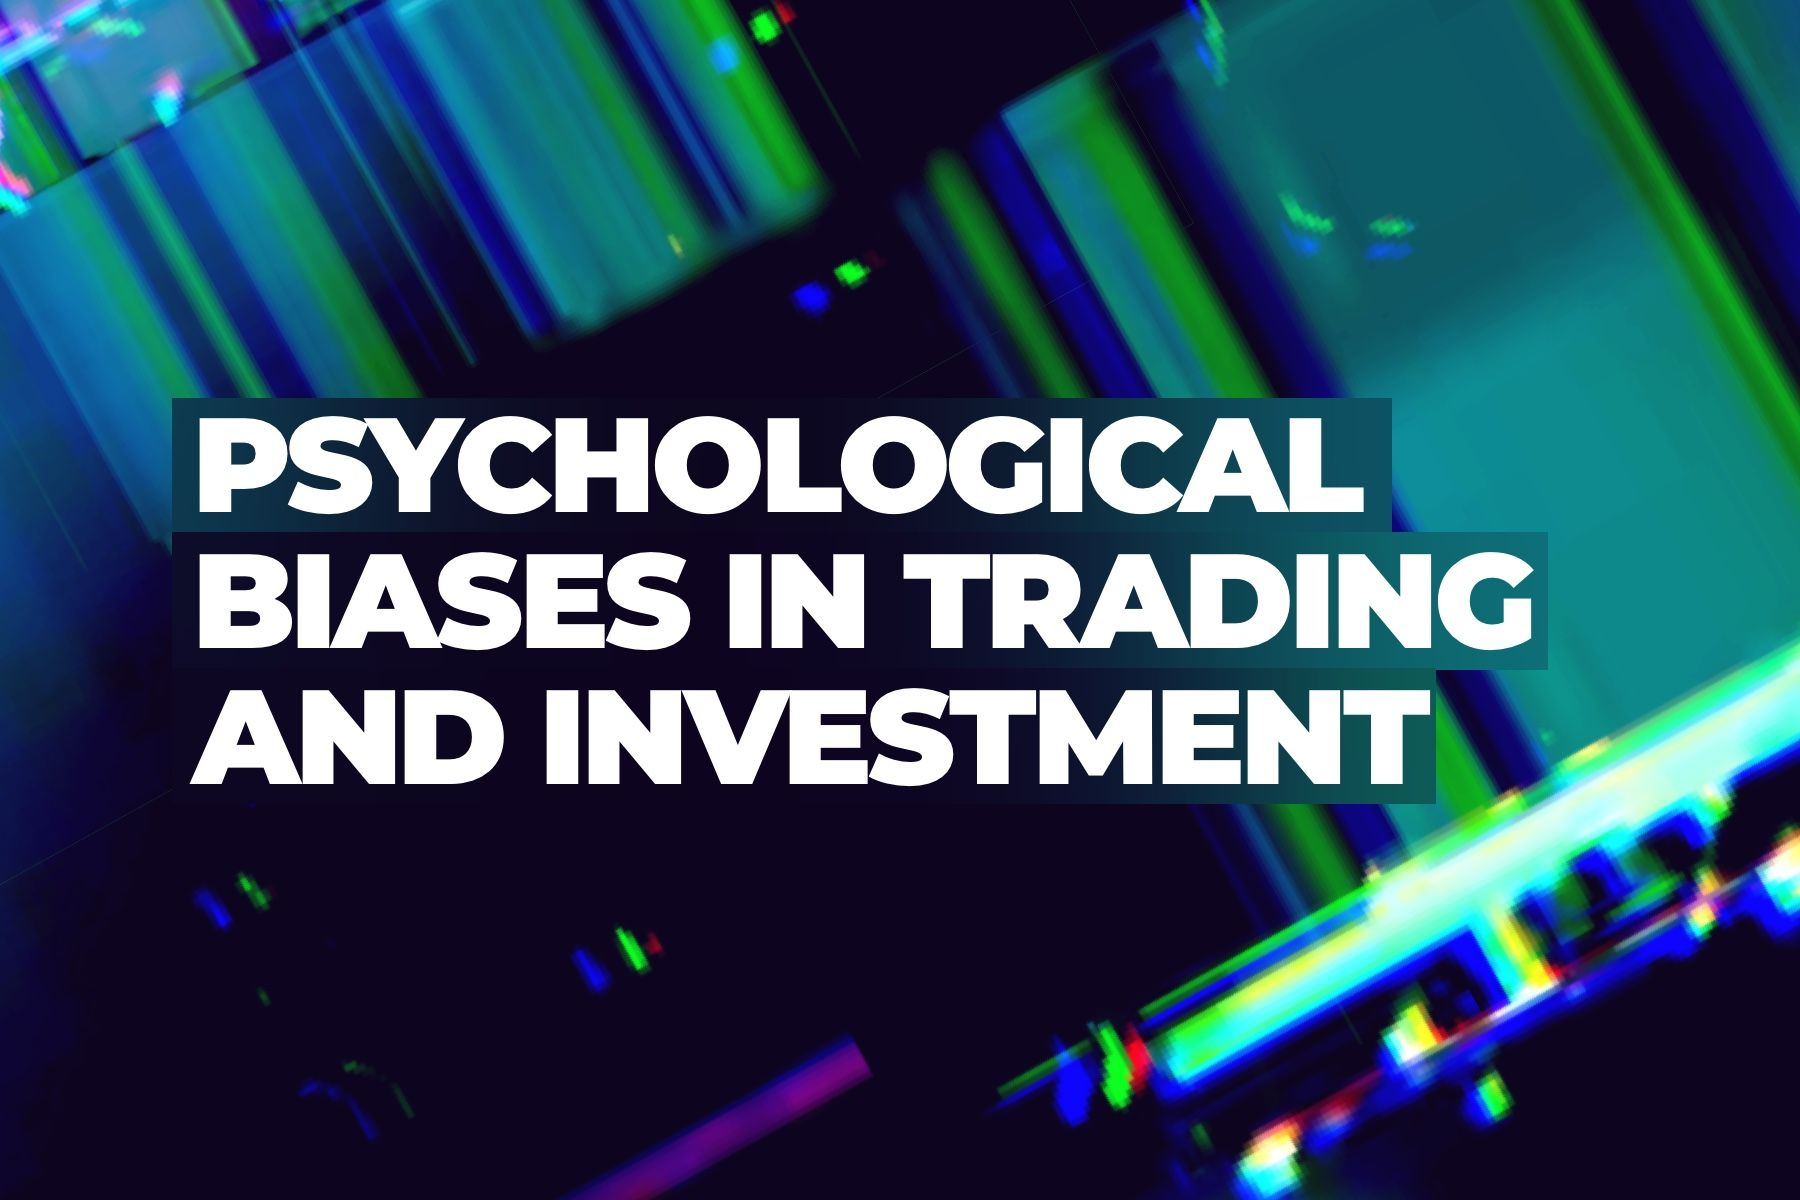 26 psychological biases lead to losses in crypto trading